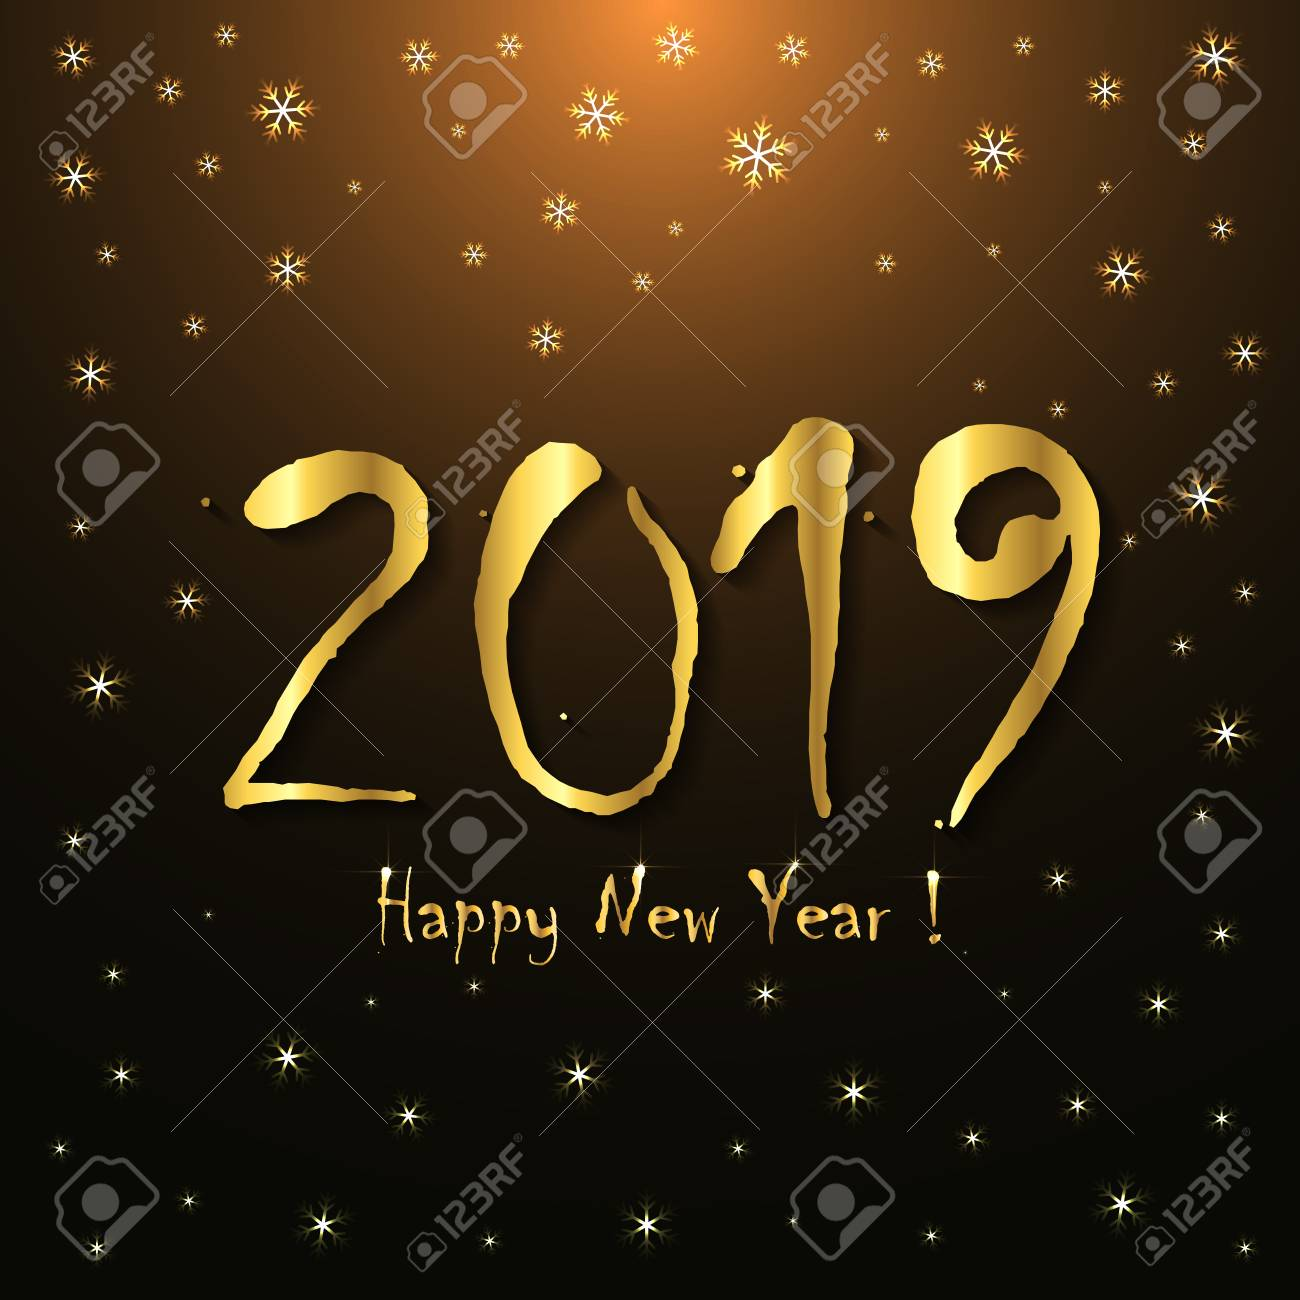 2019 happy new year greeting card template golden snowflakes design stock vector